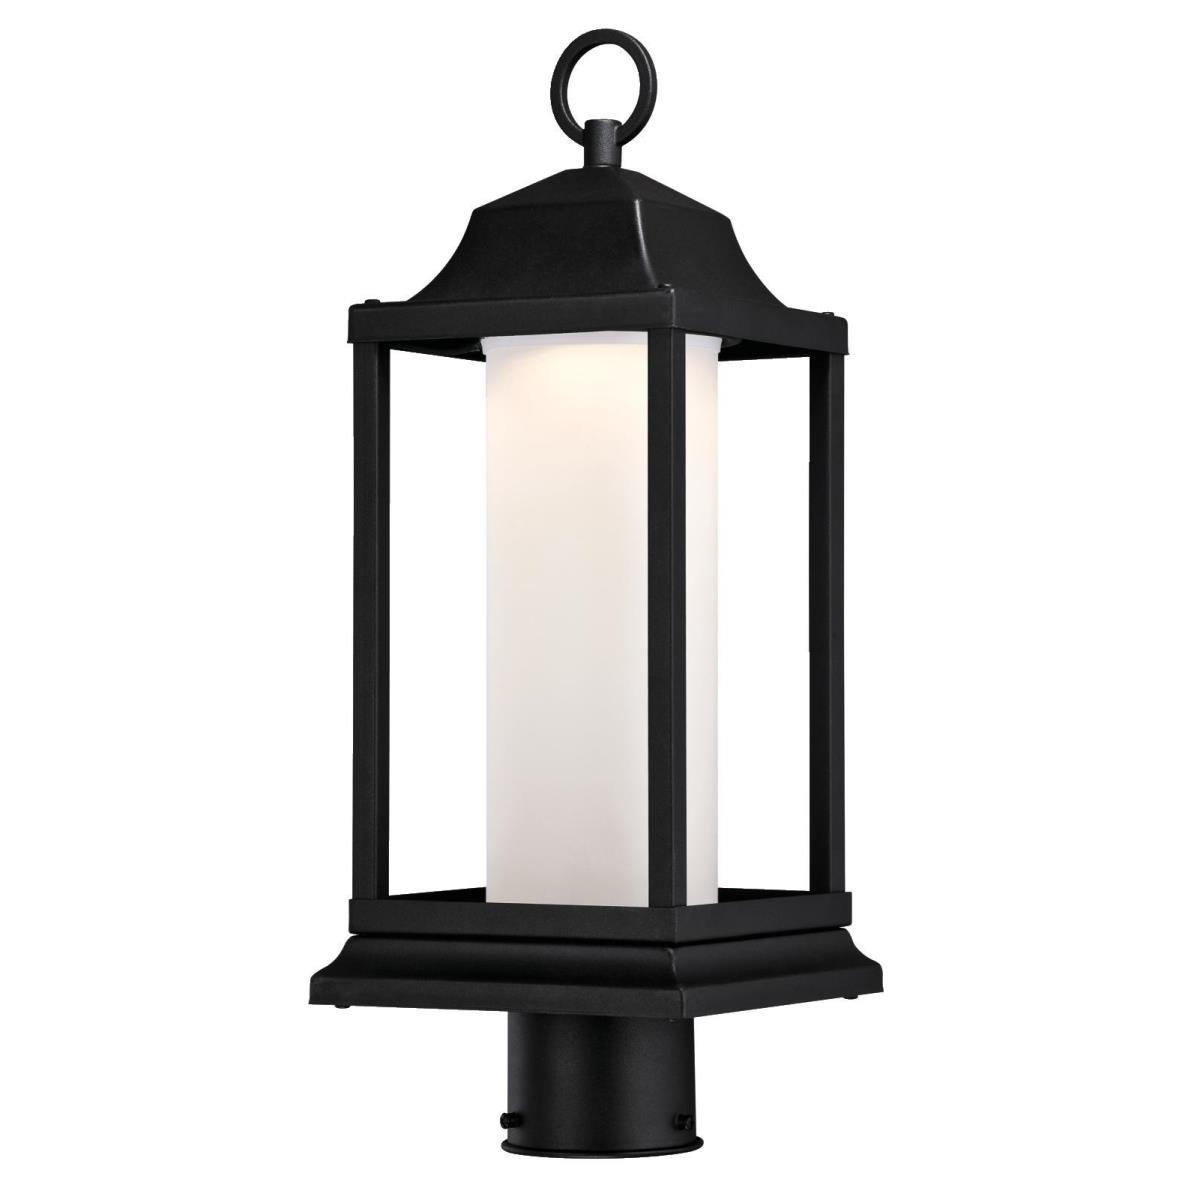 1 Light LED Post Top Fixture Textured Black Finish with Frosted Glass